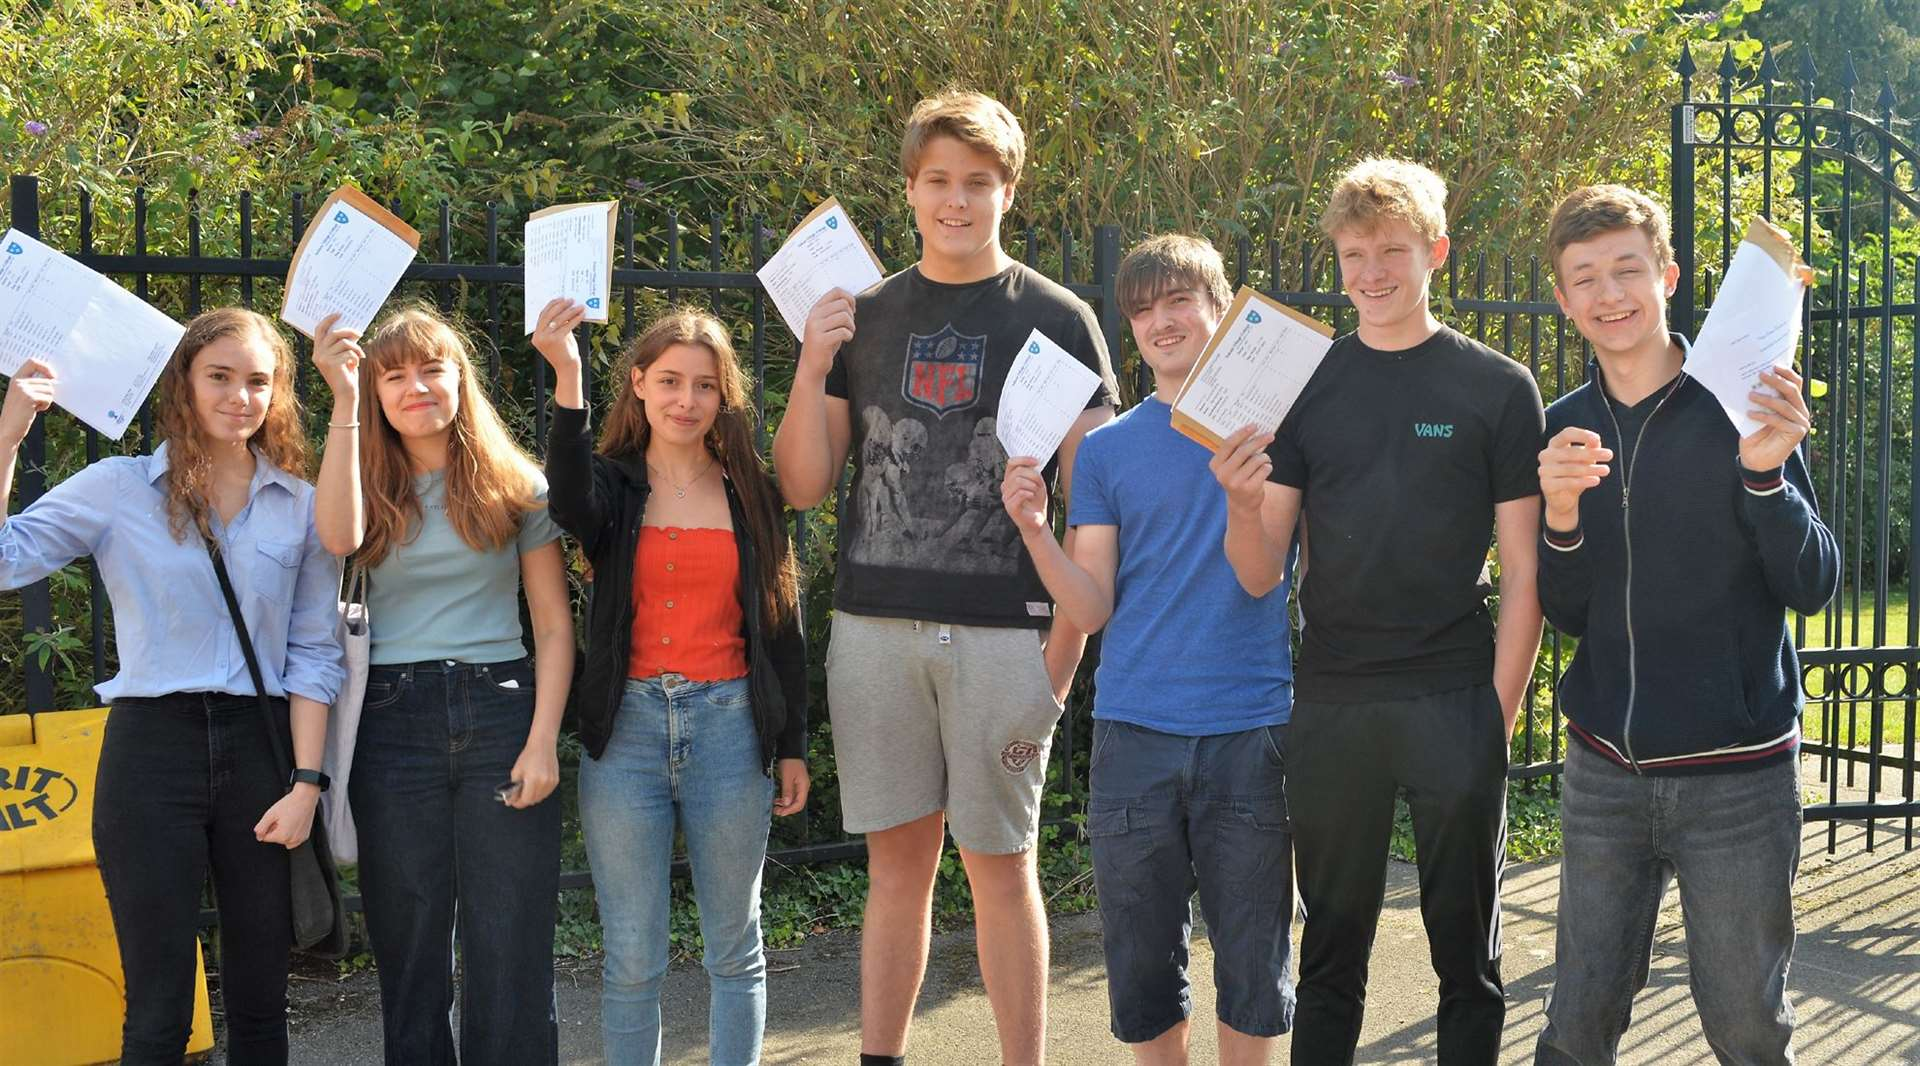 Students from Soham Village College: Emily Paillot, Millie Churley, Eloise Satchell, Kris Winkel, Benjamin Revie, Max Airey and Adam Bristow.